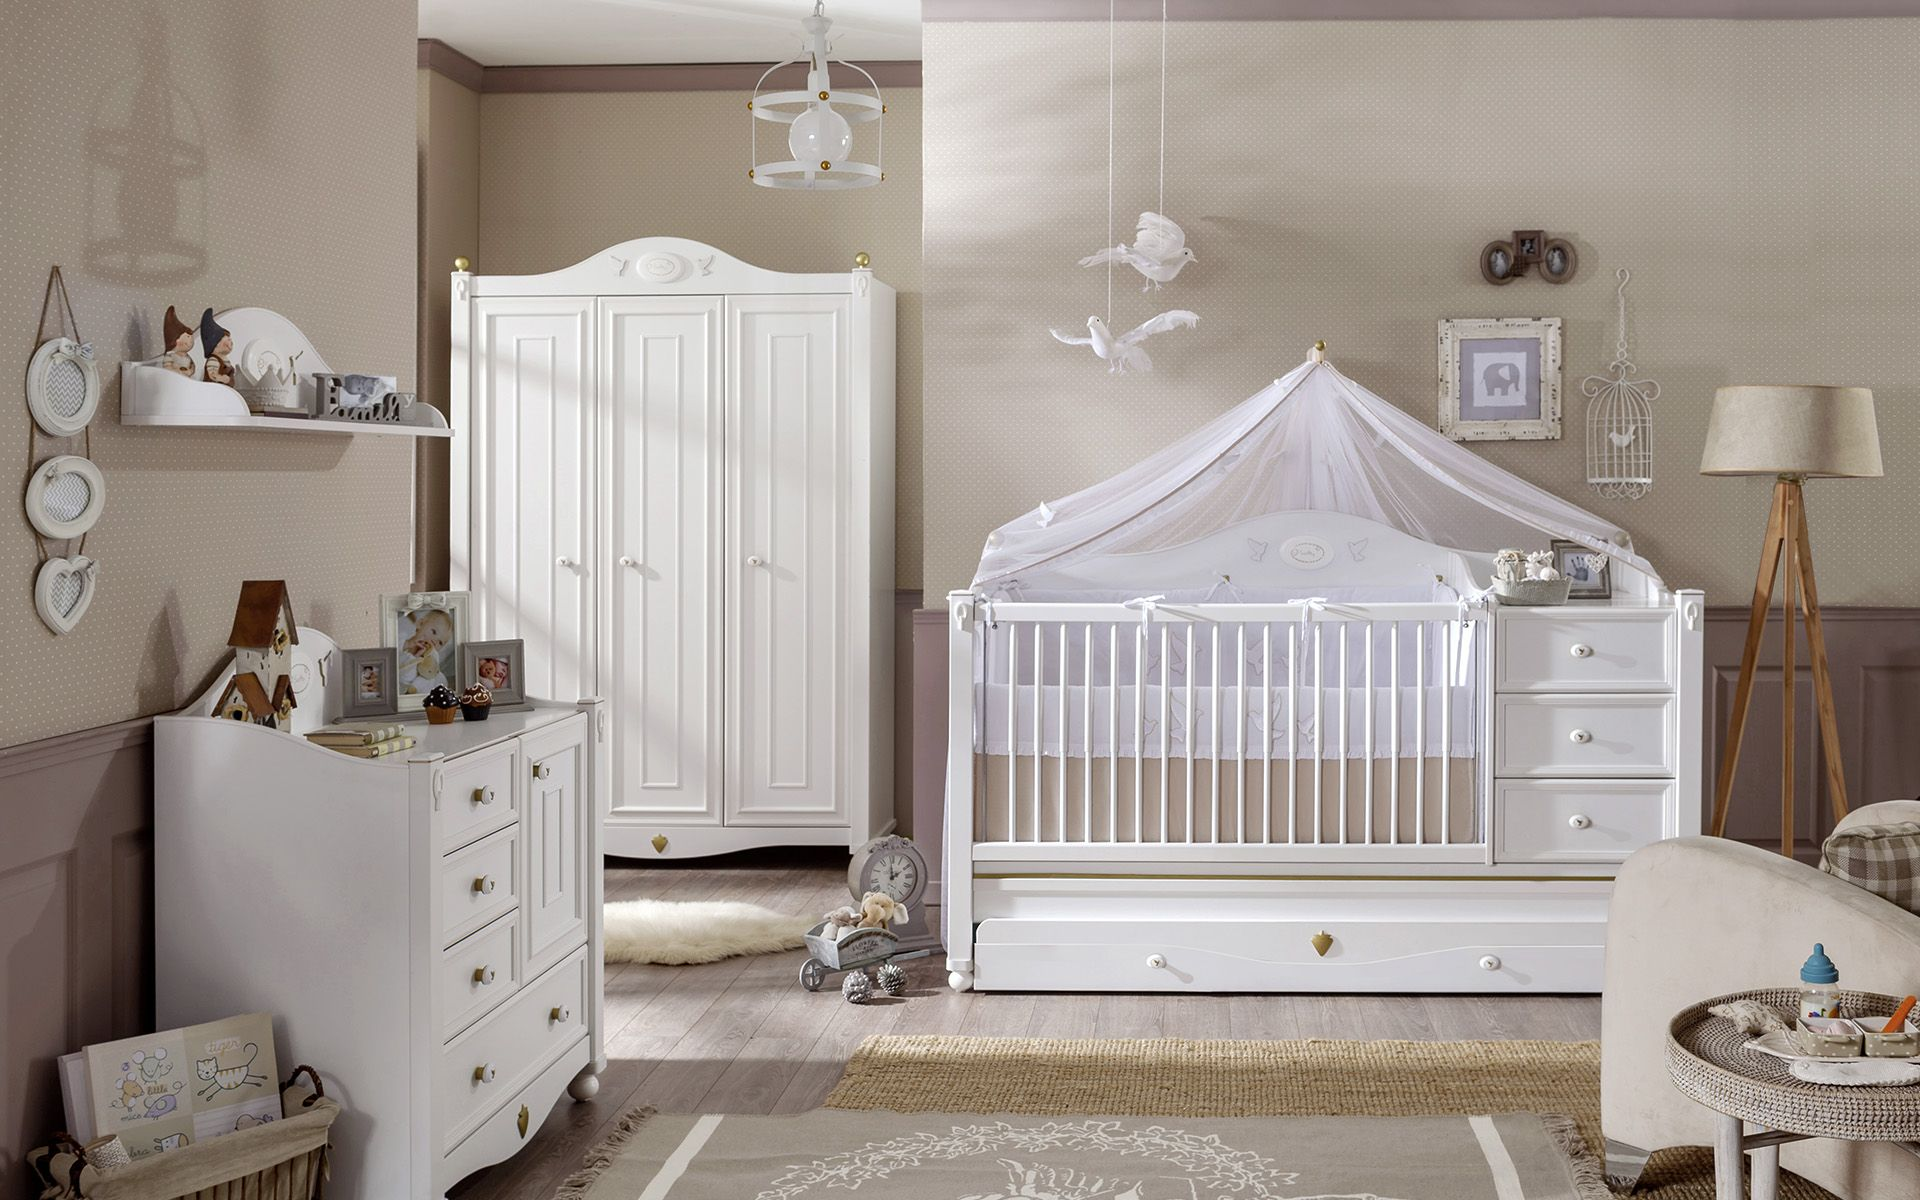 100 Fantastique Concepts Idee Deco Bebe Fille